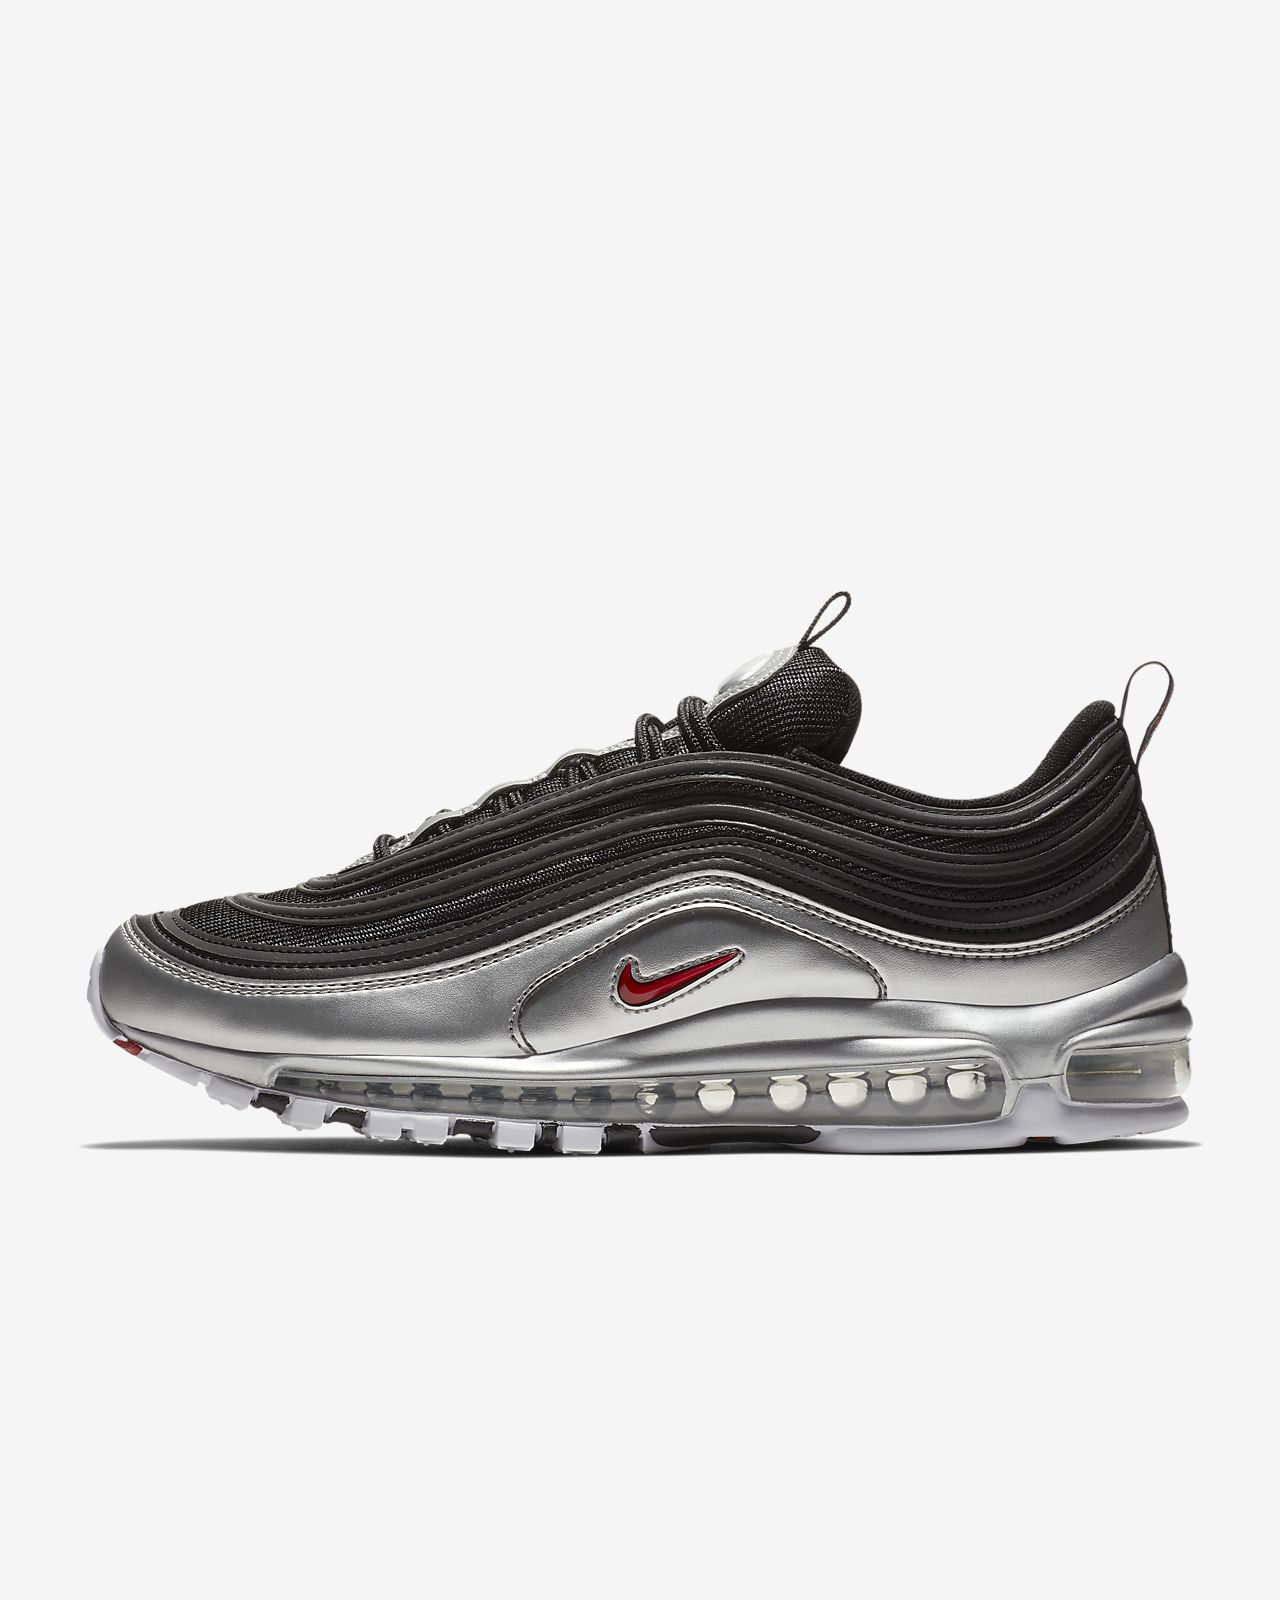 save off 037cf edb25 ... Nike Air Max 97 QS Men s Shoe